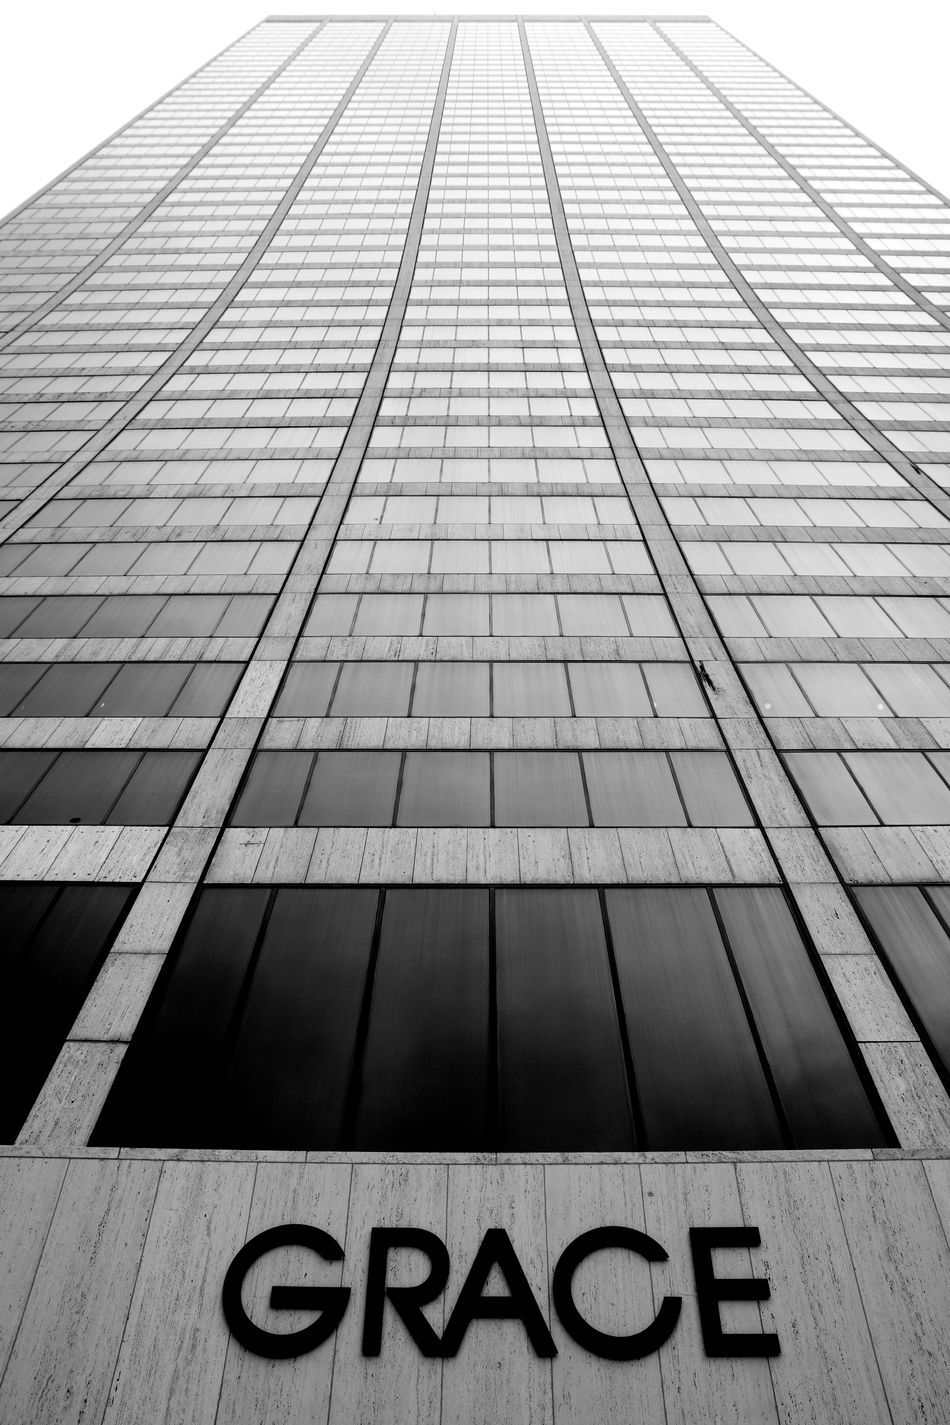 Grace Building in Manhattan Architecture Black And White Building Exterior Endlessness Façade Grace Building  Infinity Looking Up Low Angle View Manhattan Modern Monochrome Photography New York New York City Skyscraper Text Timeless Up Upward View